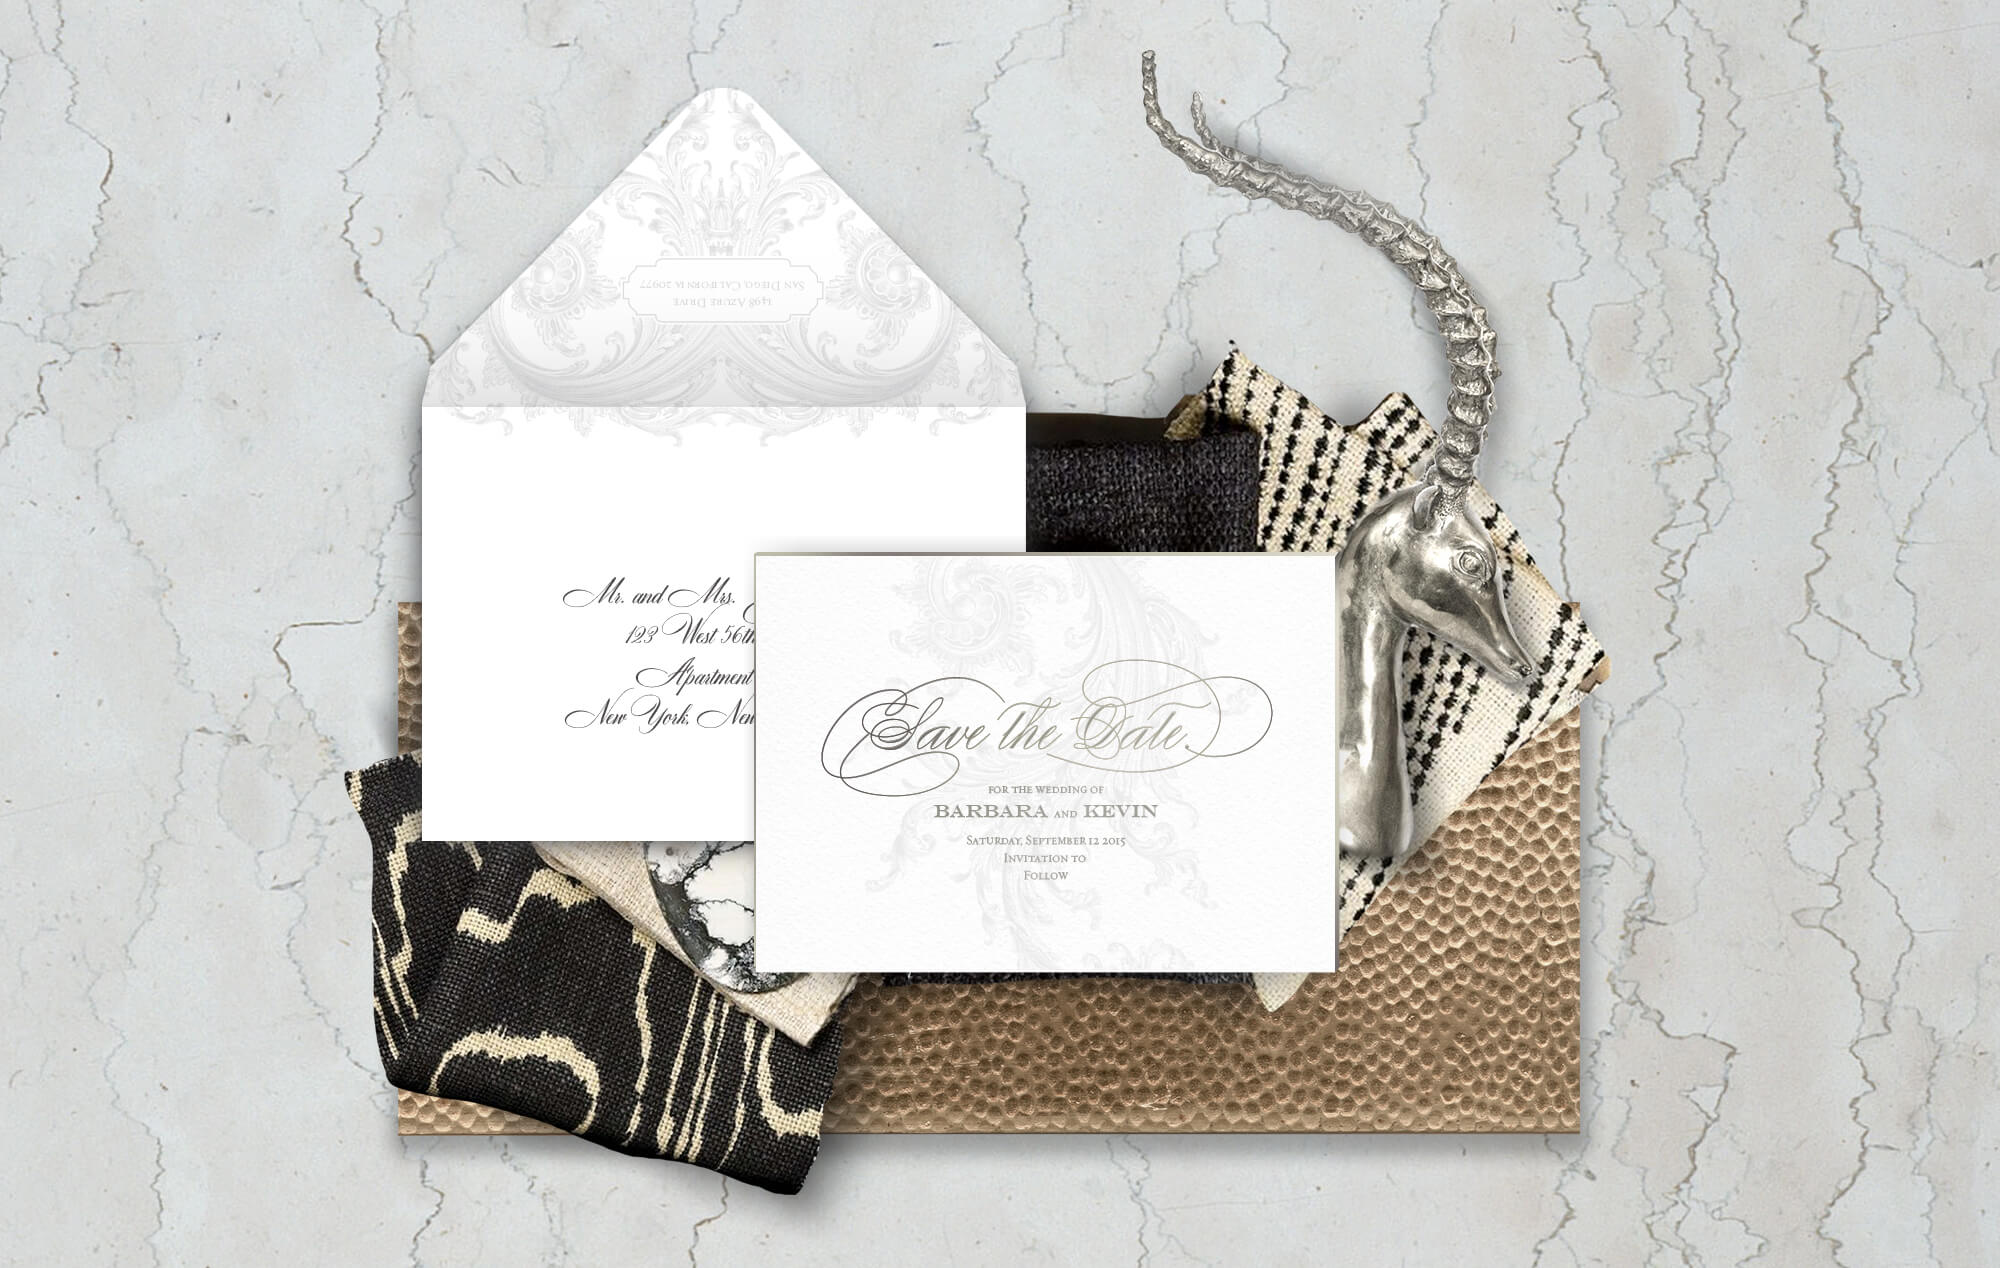 Opulent scrollwork wedding save the date